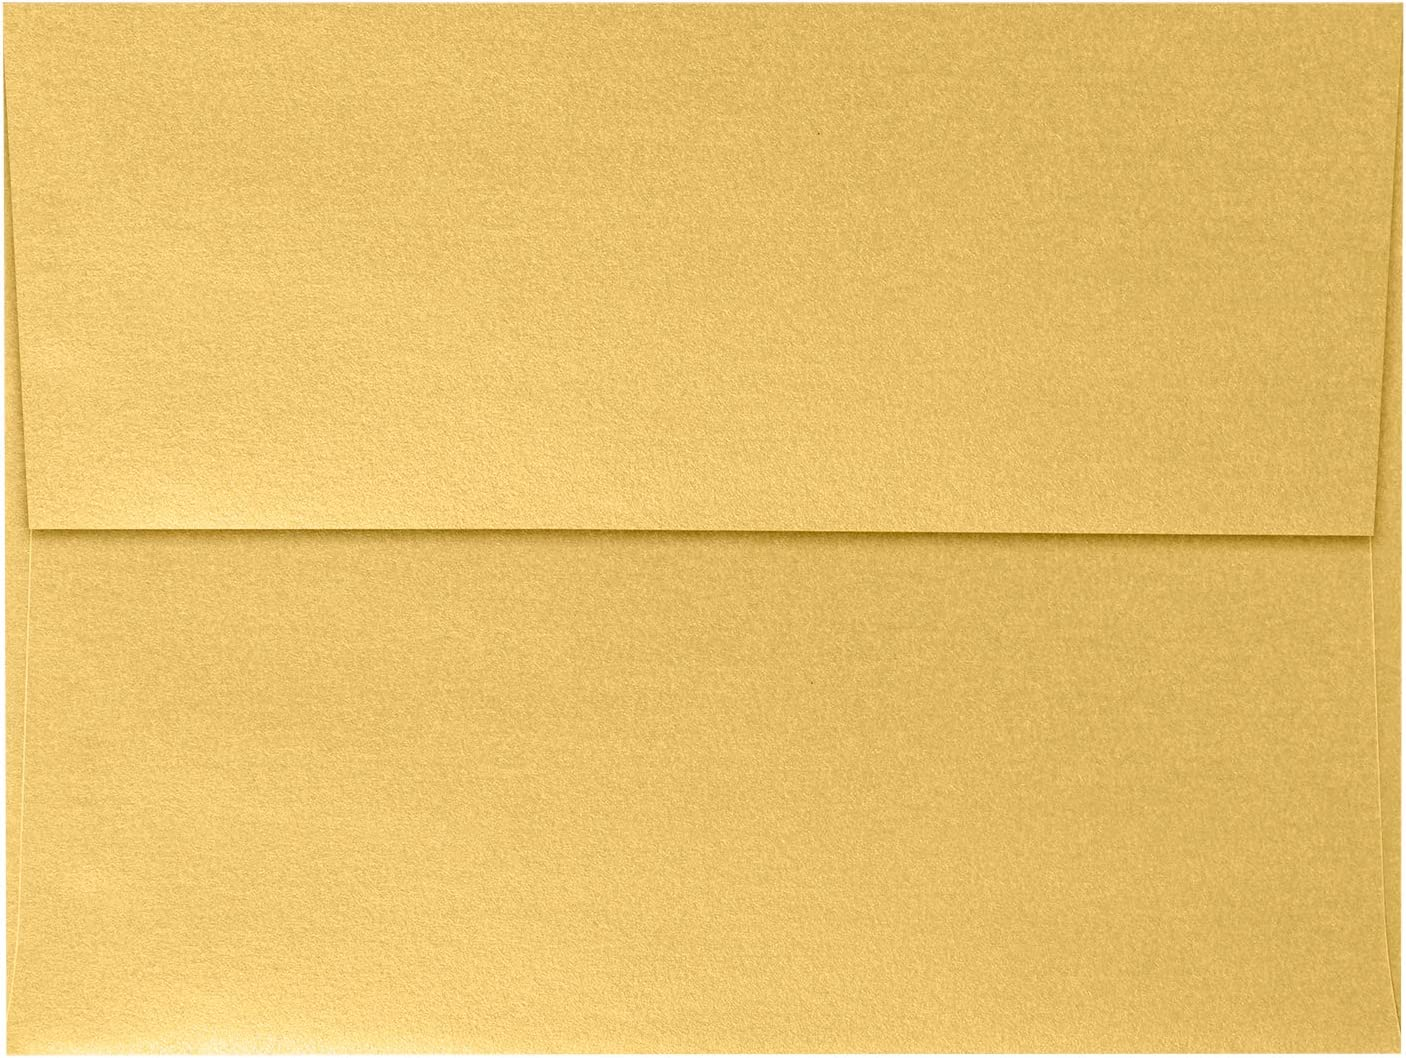 A7 Invitation Envelopes (5 1/4 x 7 1/4) - Gold Metallic (50 Qty) | Perfect for Invitations, Weddings, Announcements, 5x7 Cards | Peel & Press | 80lb. Text Weight | Printable | Square Flap | 5380-07-50